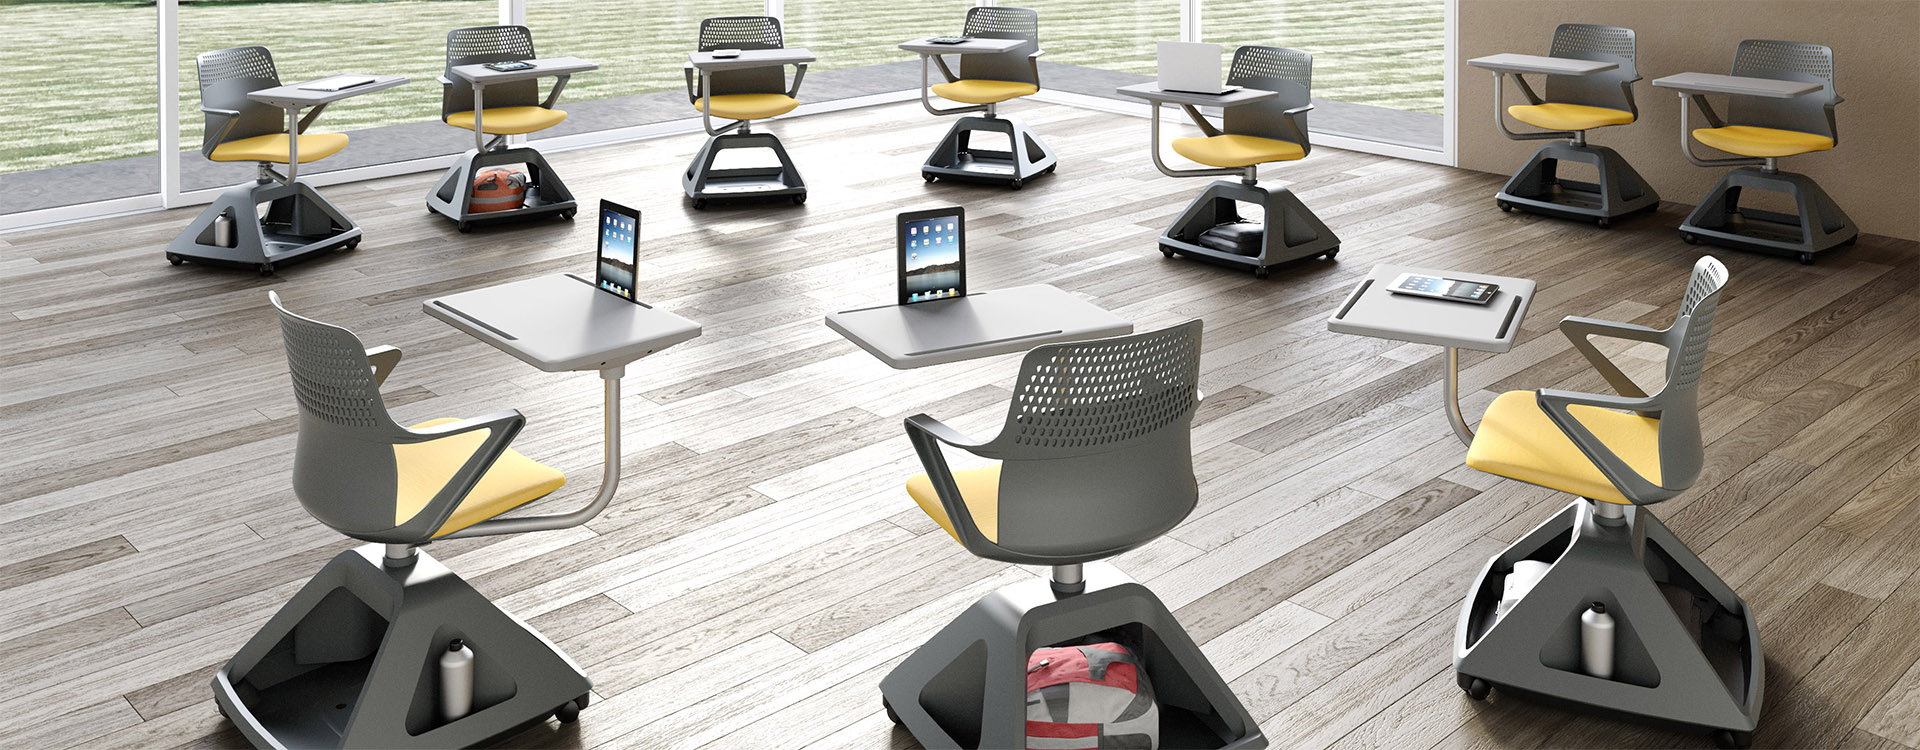 Studio Evo tablet chair